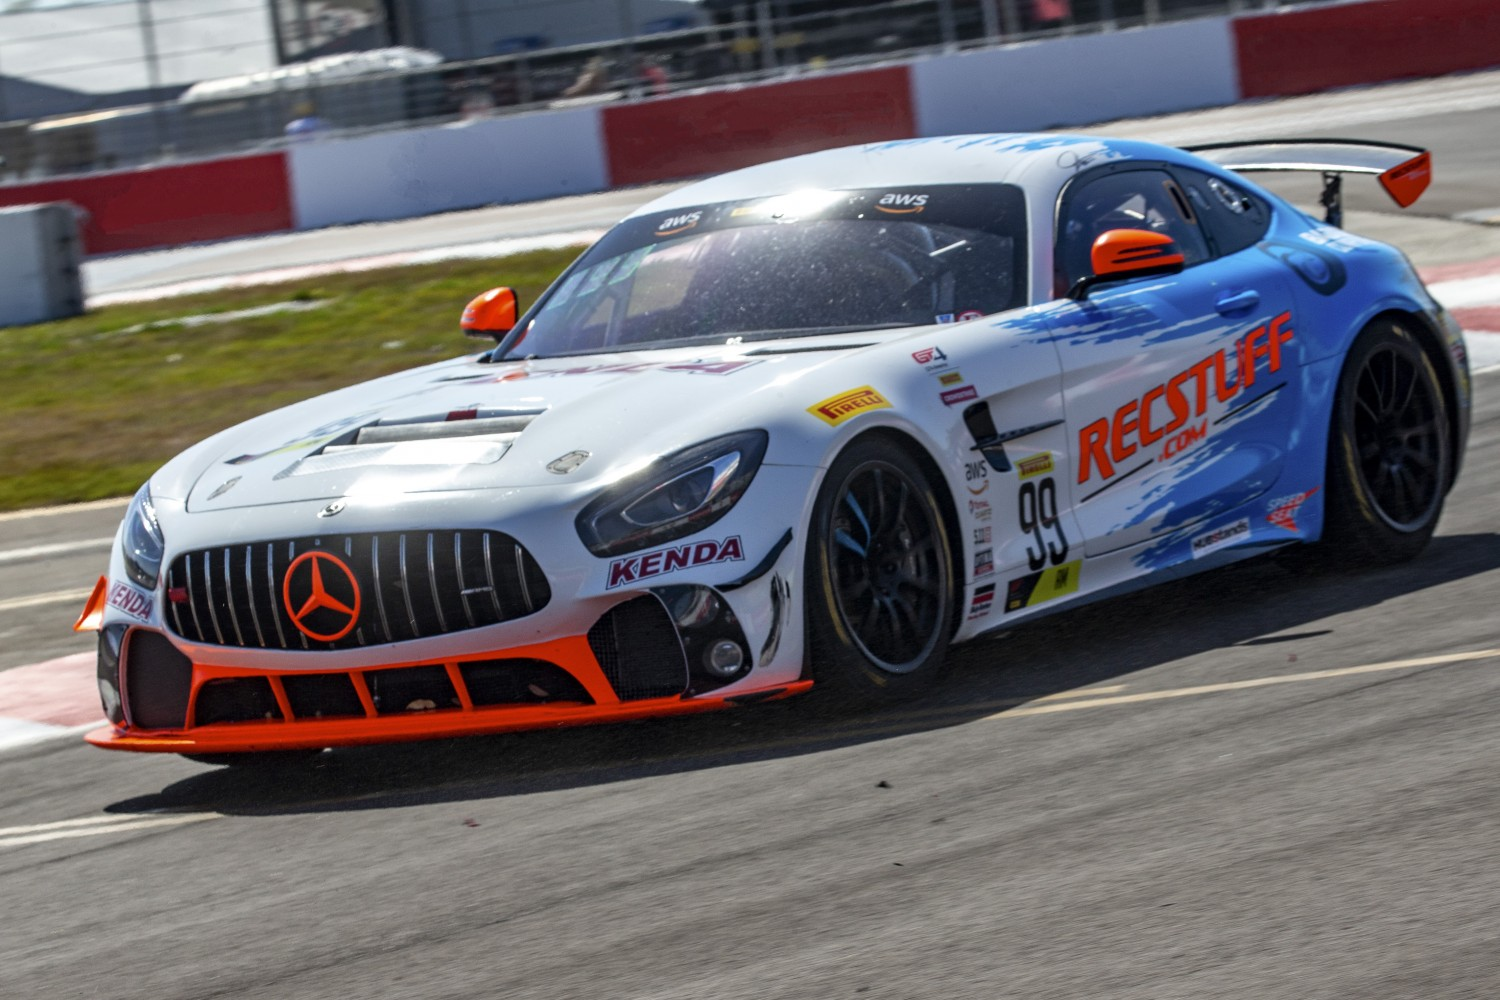 #99 GT4 Sprint, Am, RecStuff Racing, Jeff Courtney, Mercedes-AMG GT4 SRO Motorsports Group America, St. Pete Grand Prix, St. Petersburg, FL, March 2020